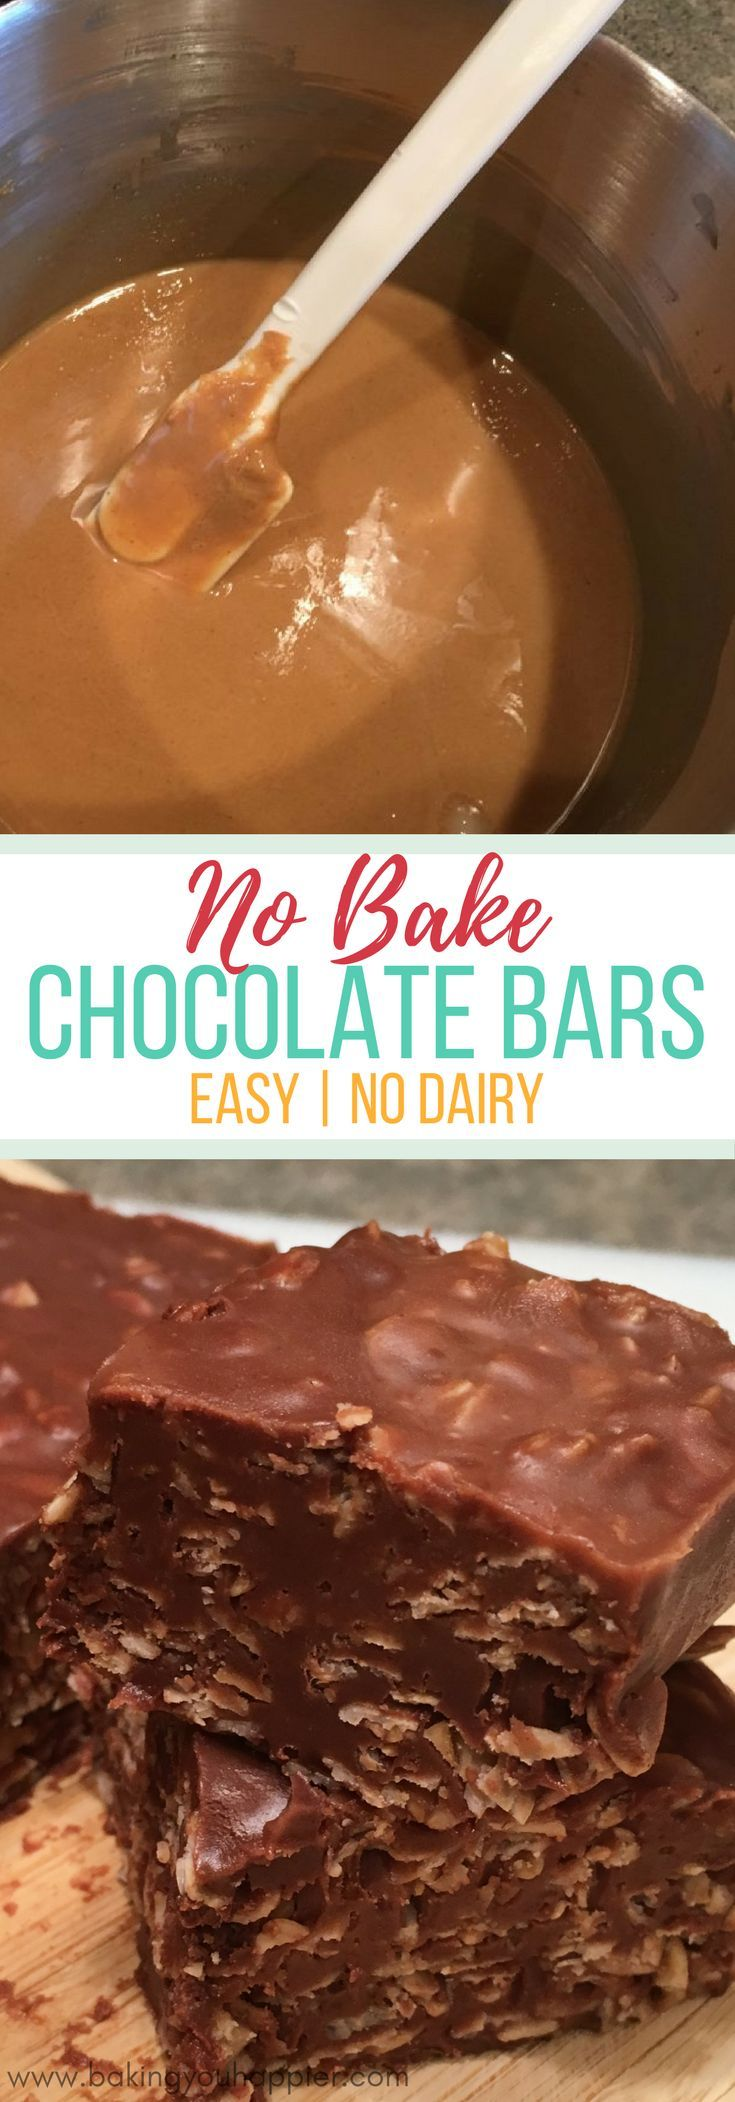 No Bake Vegan Chocolate Bars, these take 10 minutes or less from start to fridge! These vegan chocolate bars are so easy to make and taste delicious!